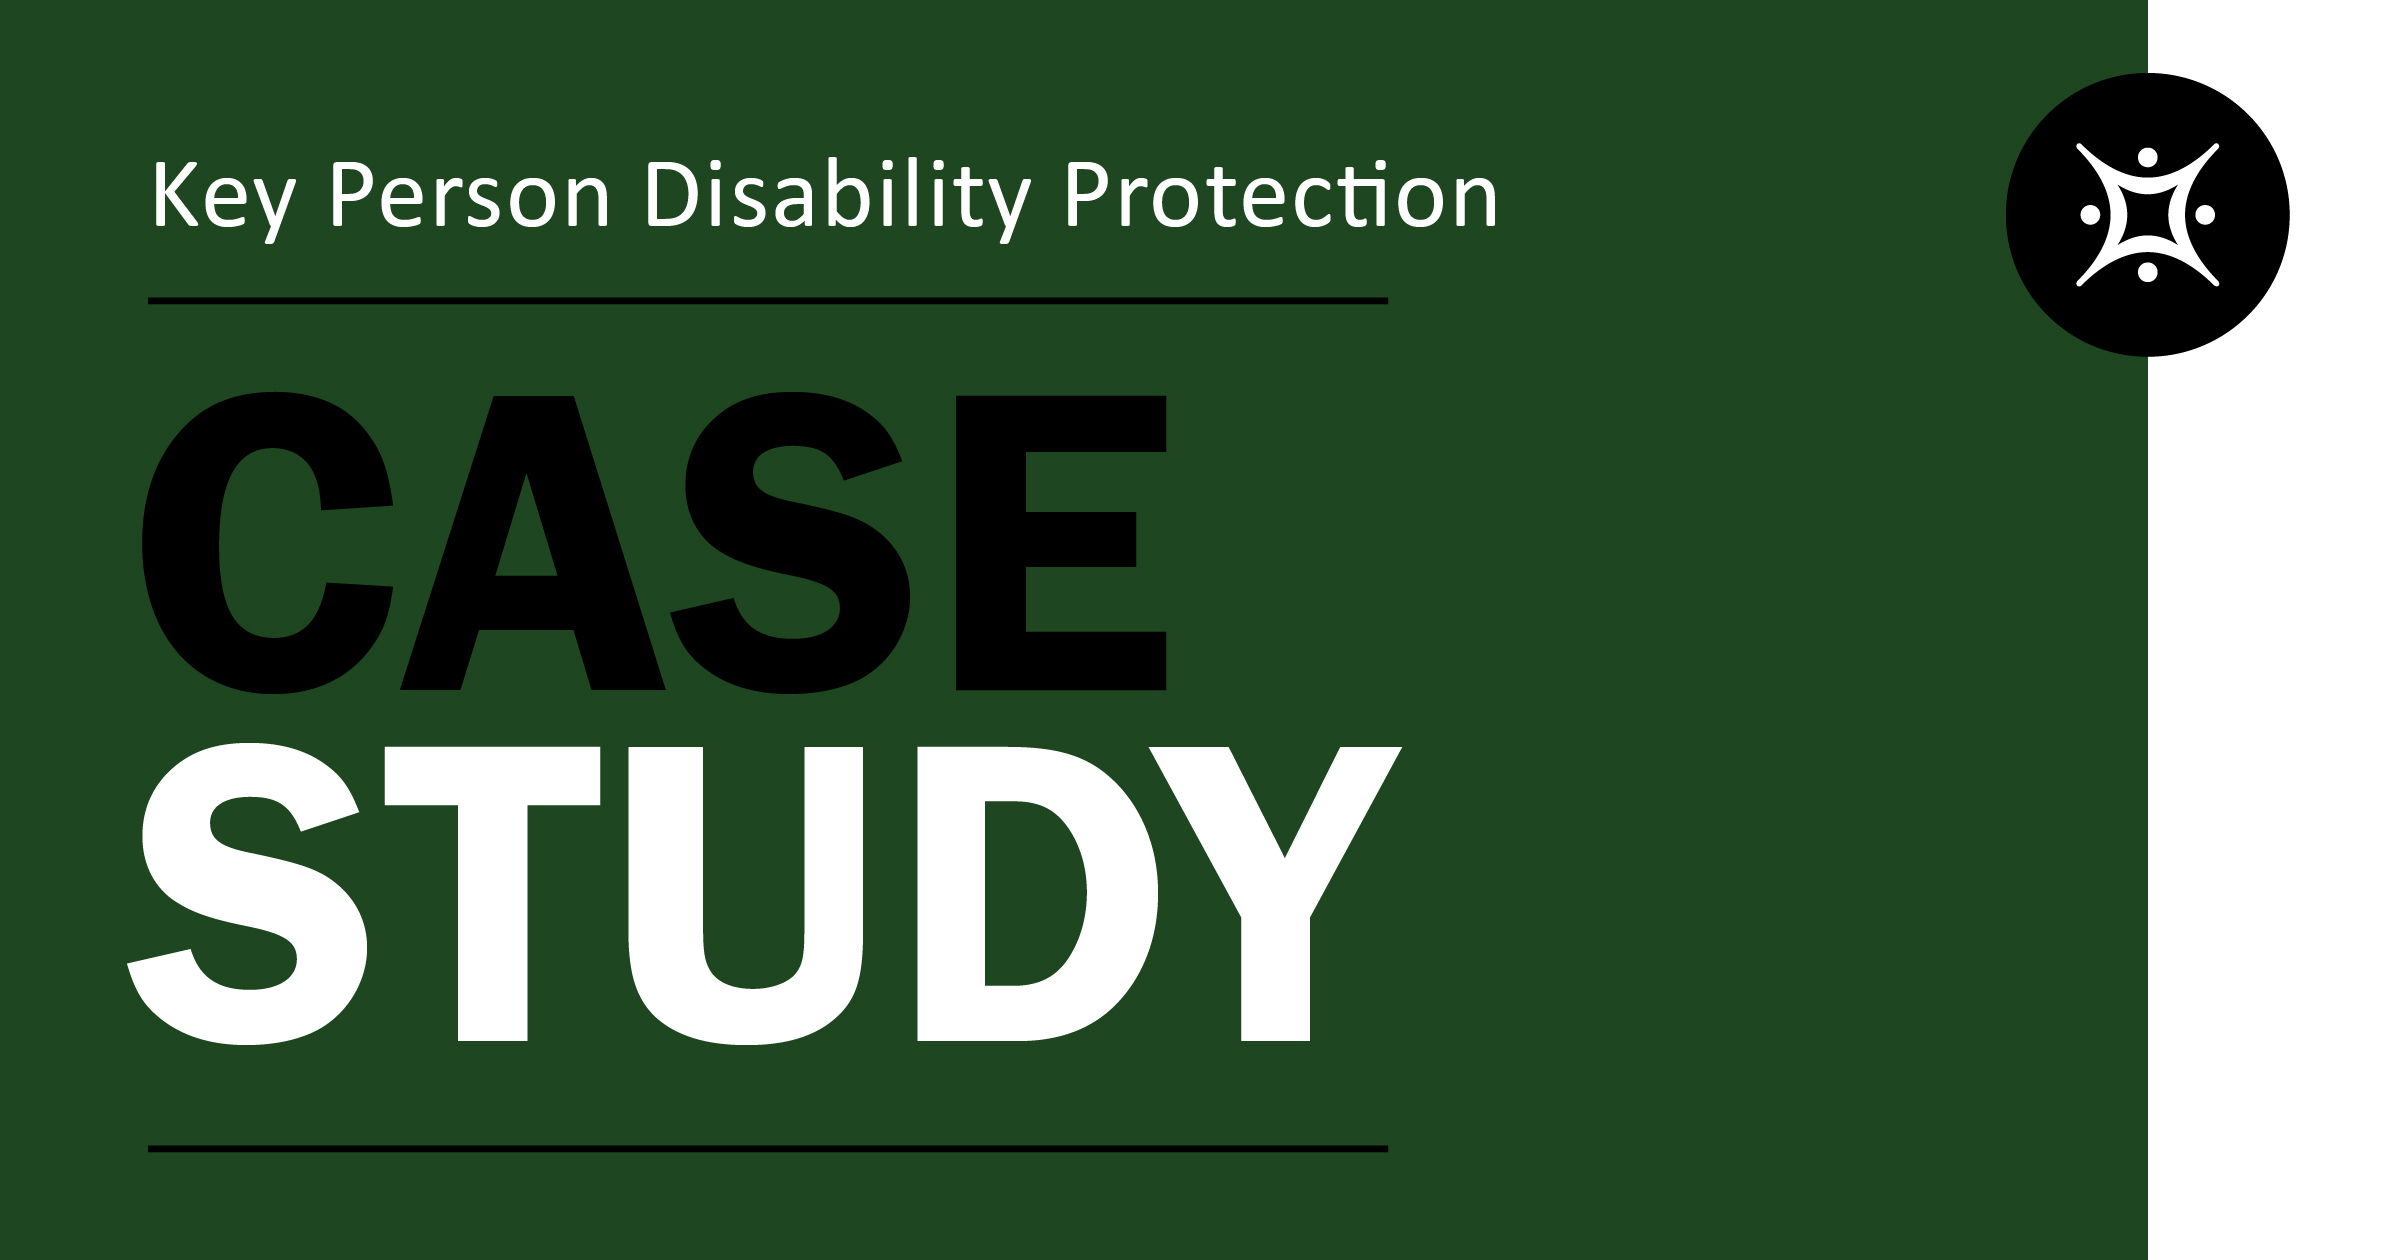 Key Person Disability Insurance